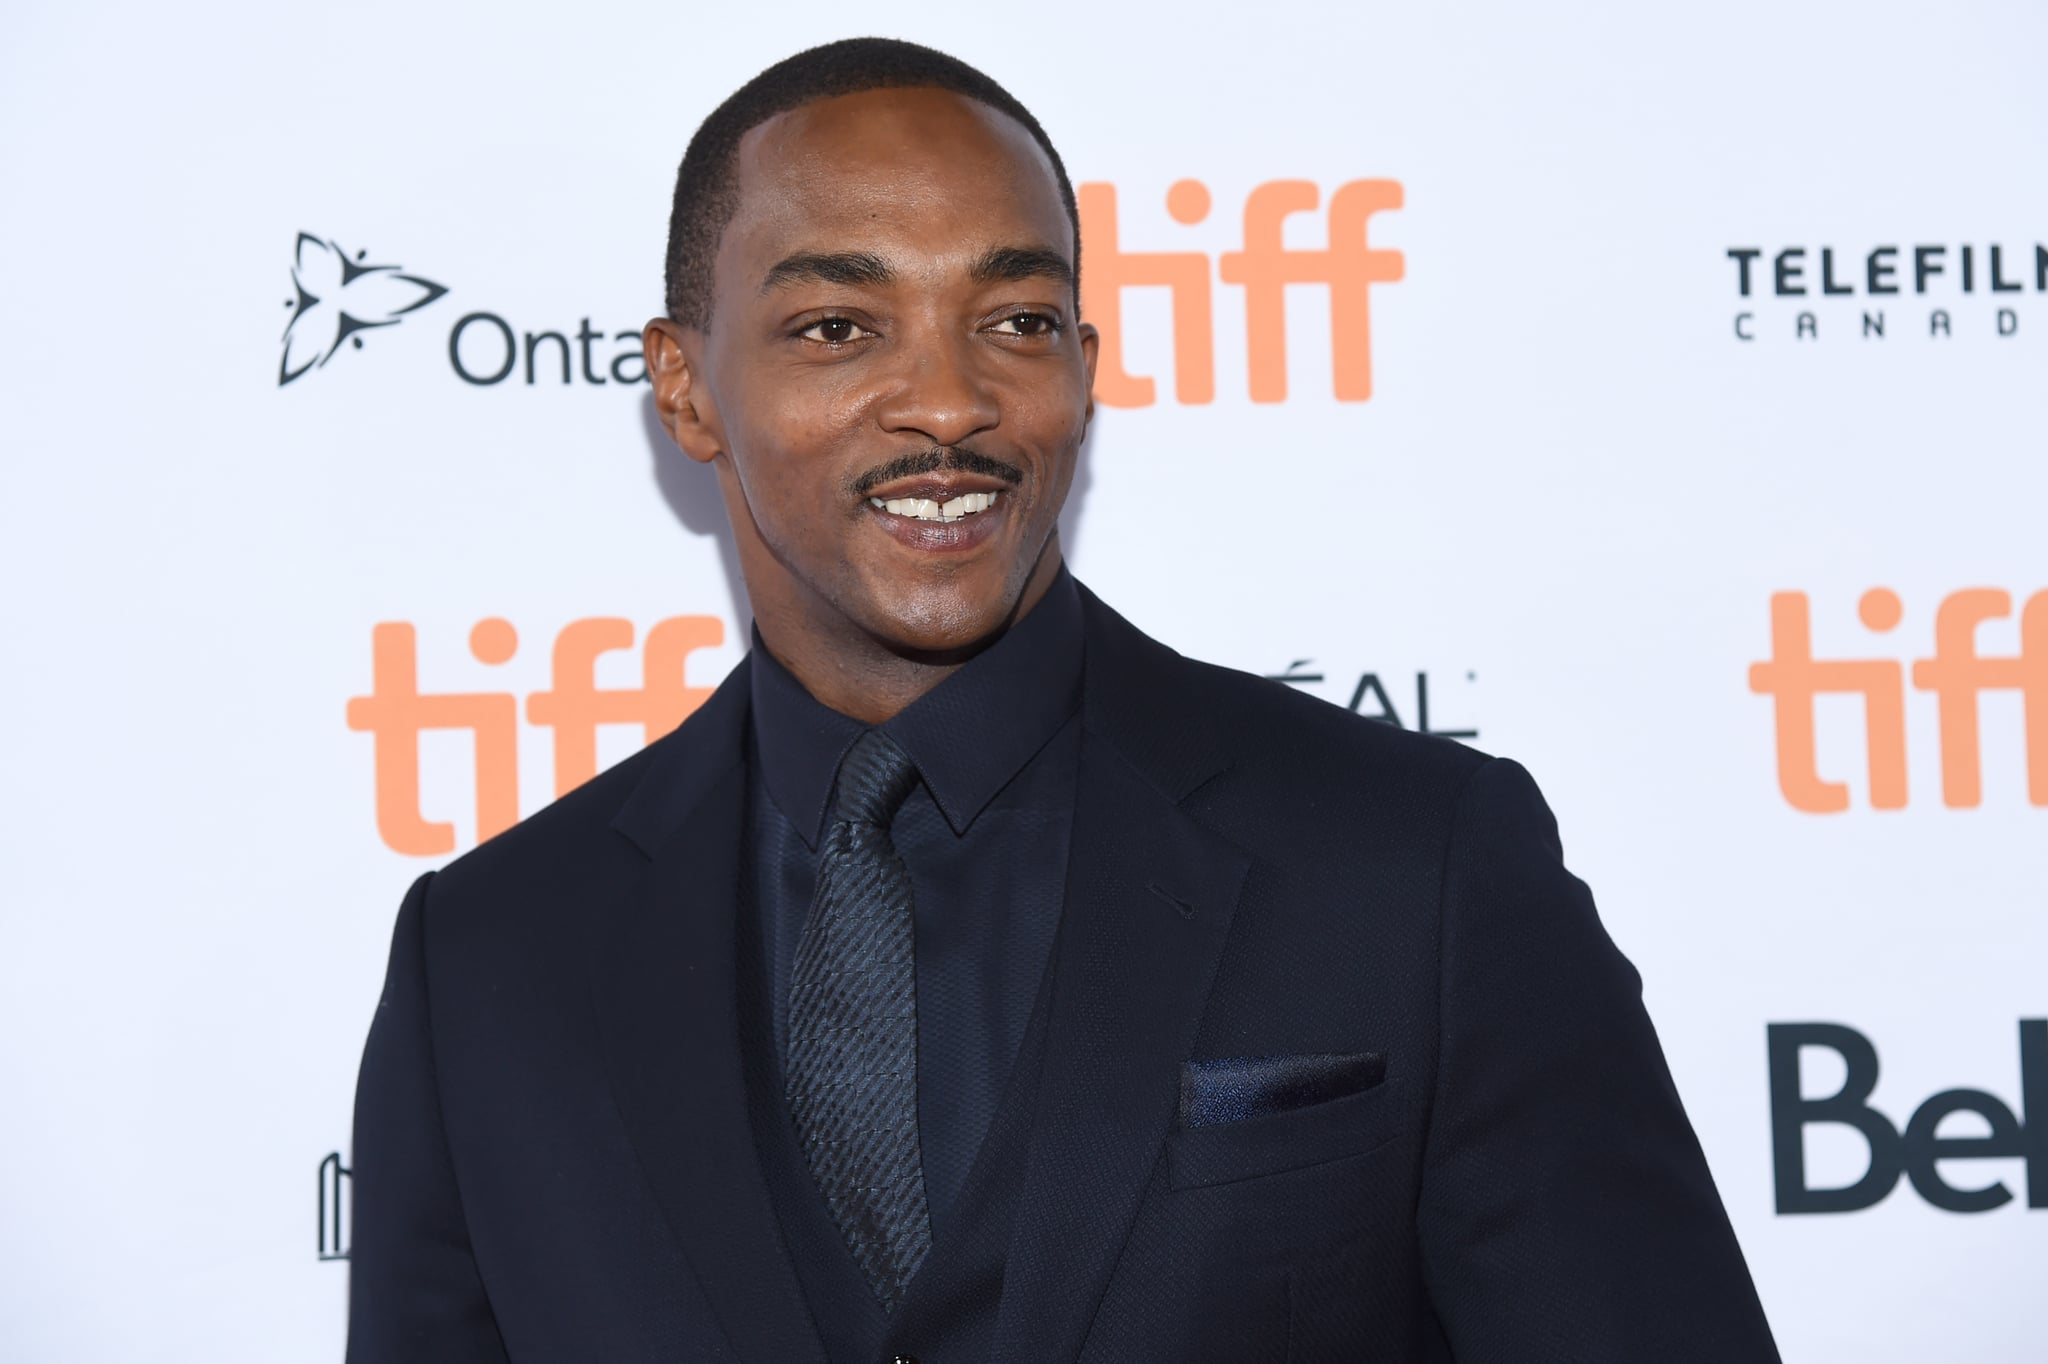 TORONTO, ONTARIO - SEPTEMBER 07: Anthony Mackie attends the